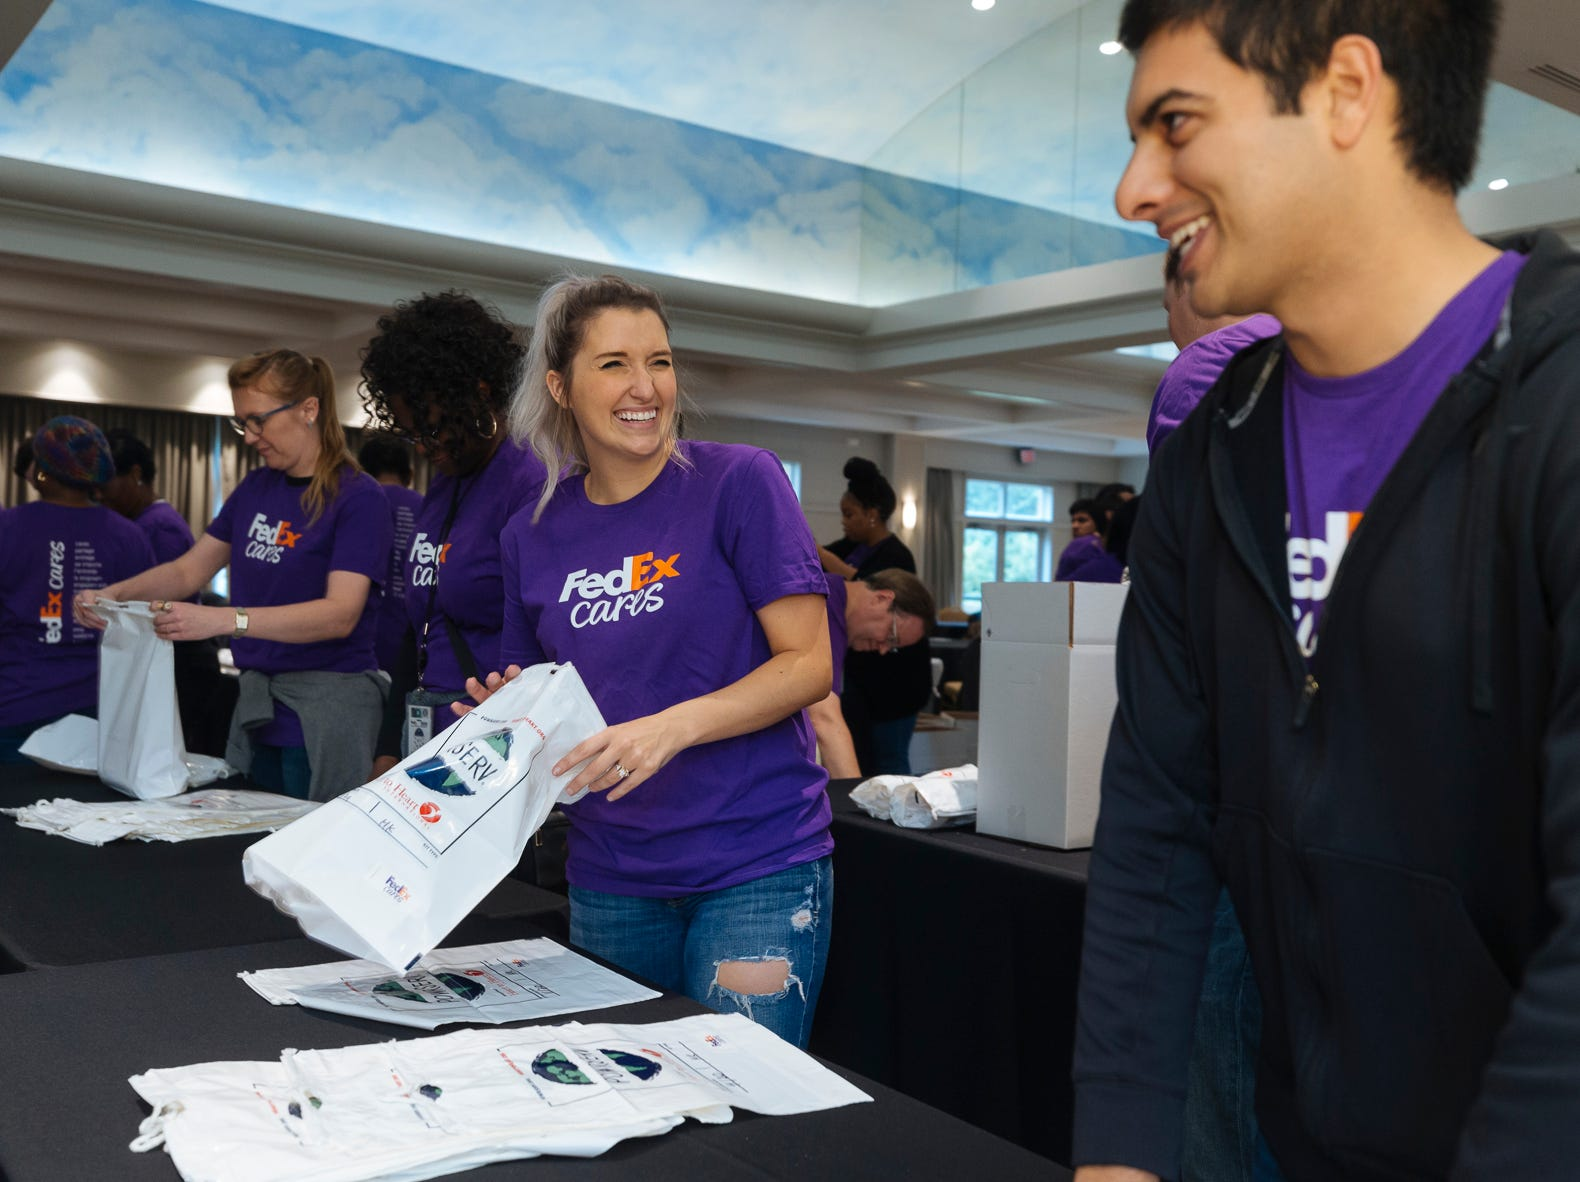 More than 100 FedEx volunteers collaborate with Heart to Heart International assembling 3,600 hygiene kits at the Memphis Botanic Gardens on Friday, Oct. 26, 2018. The kits will be used to provide health relief for victims from the devastation of Hurricanes Florence and Michael.